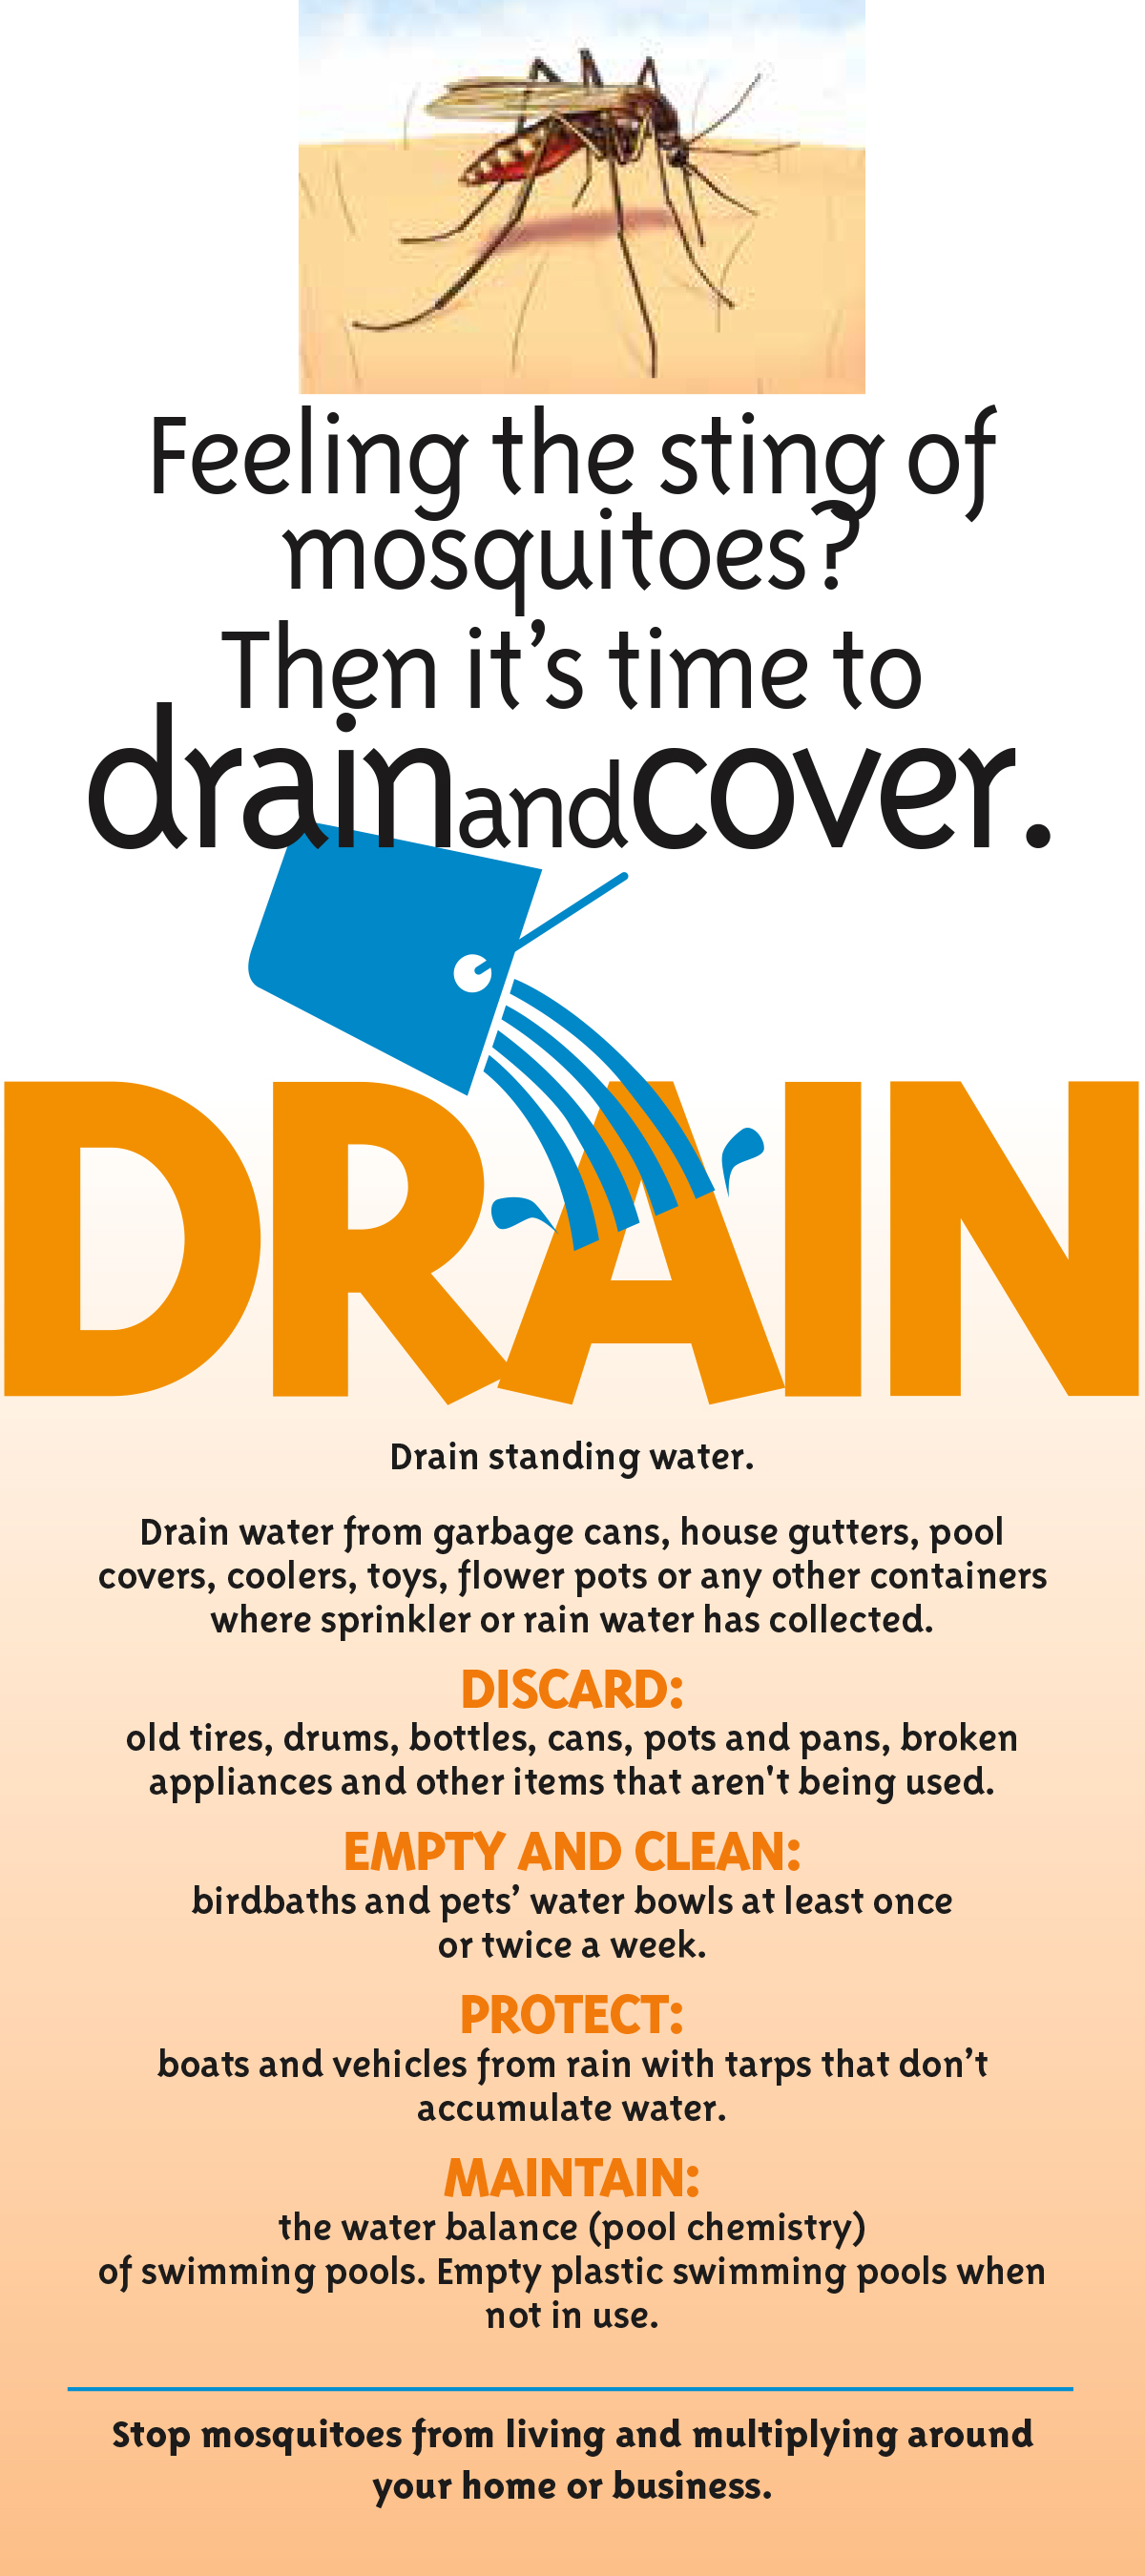 drain-and-cover-eng-1